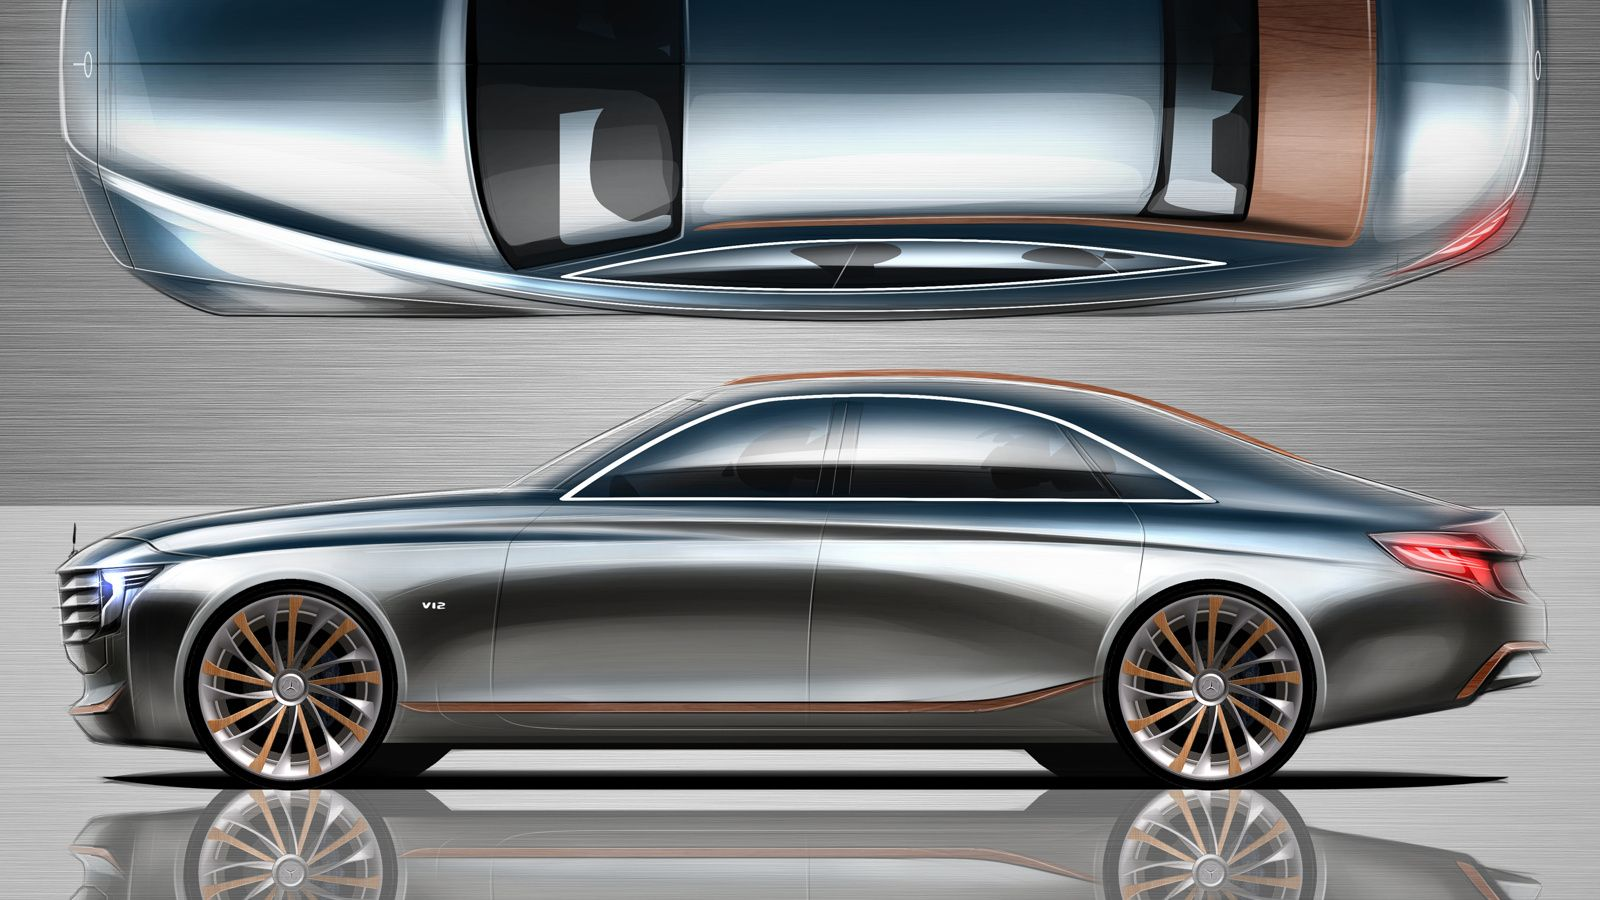 2021 Mercedes Benz U Class Concept For An Uber Saloon Placed Above The S Class Carscoops Mercedes Benz Benz Mercedes